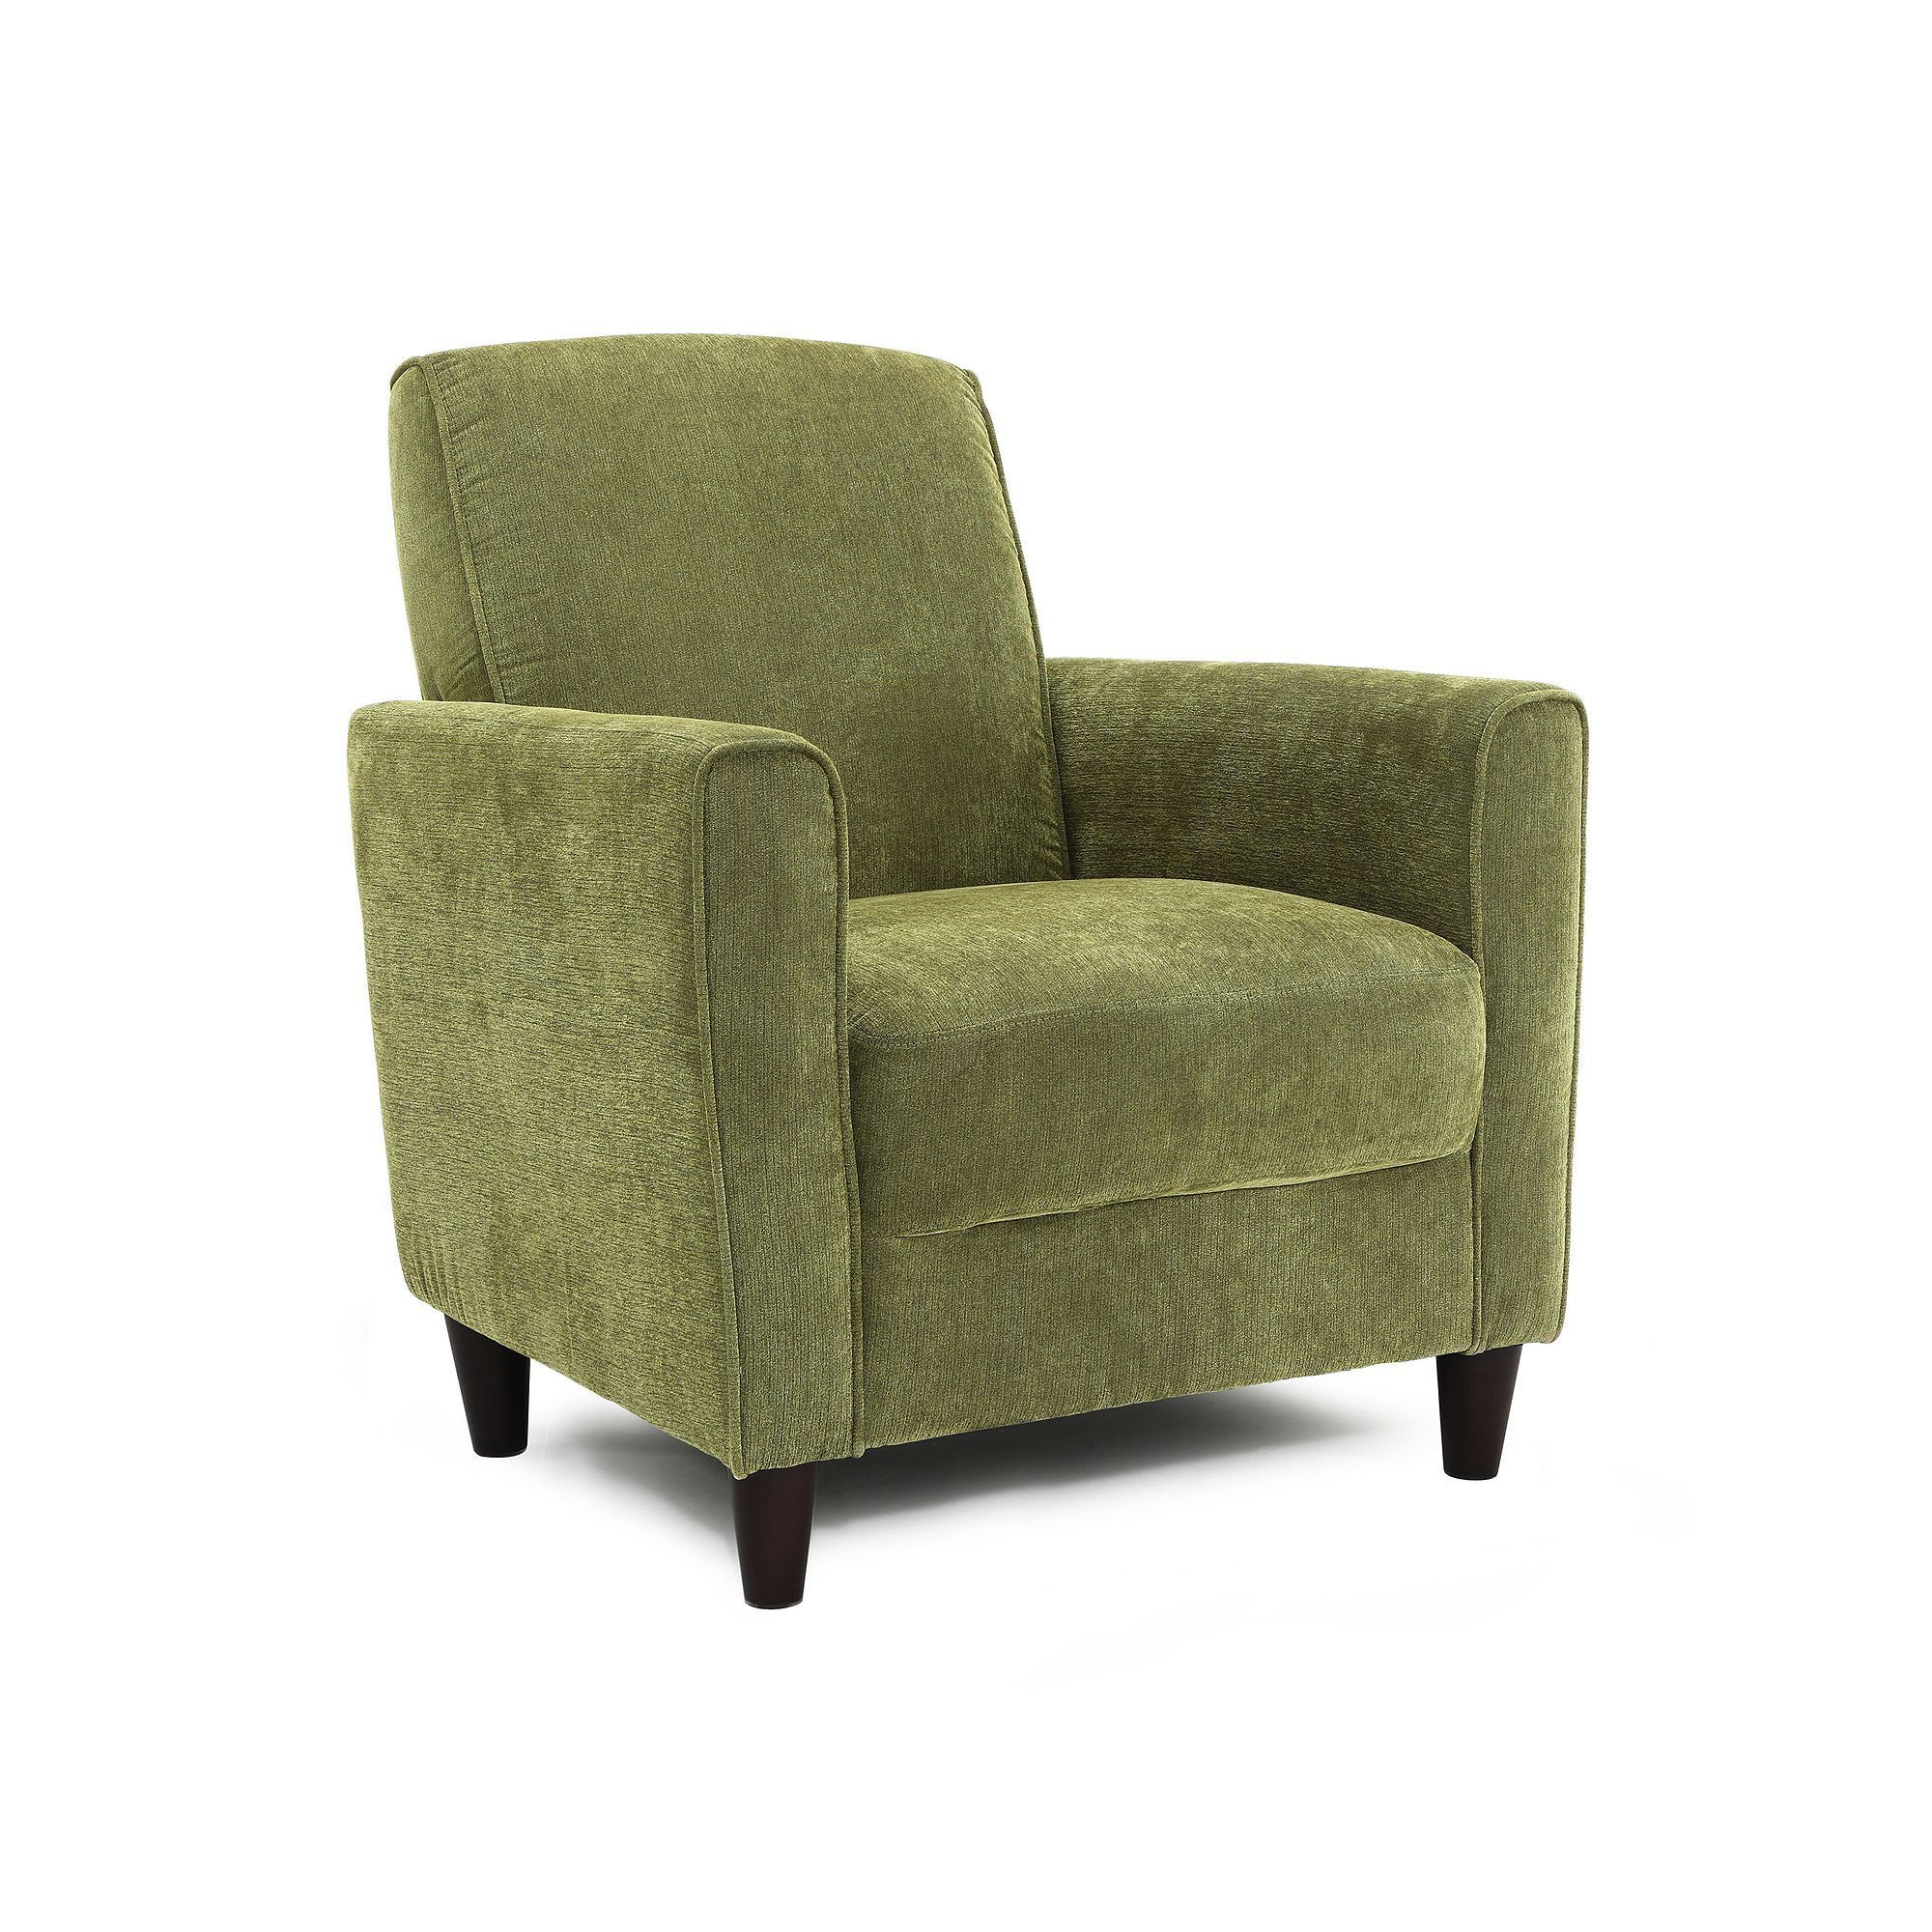 Dhi Enzo Arm Chair Reviews: Green Accent Chair, Accent Chairs